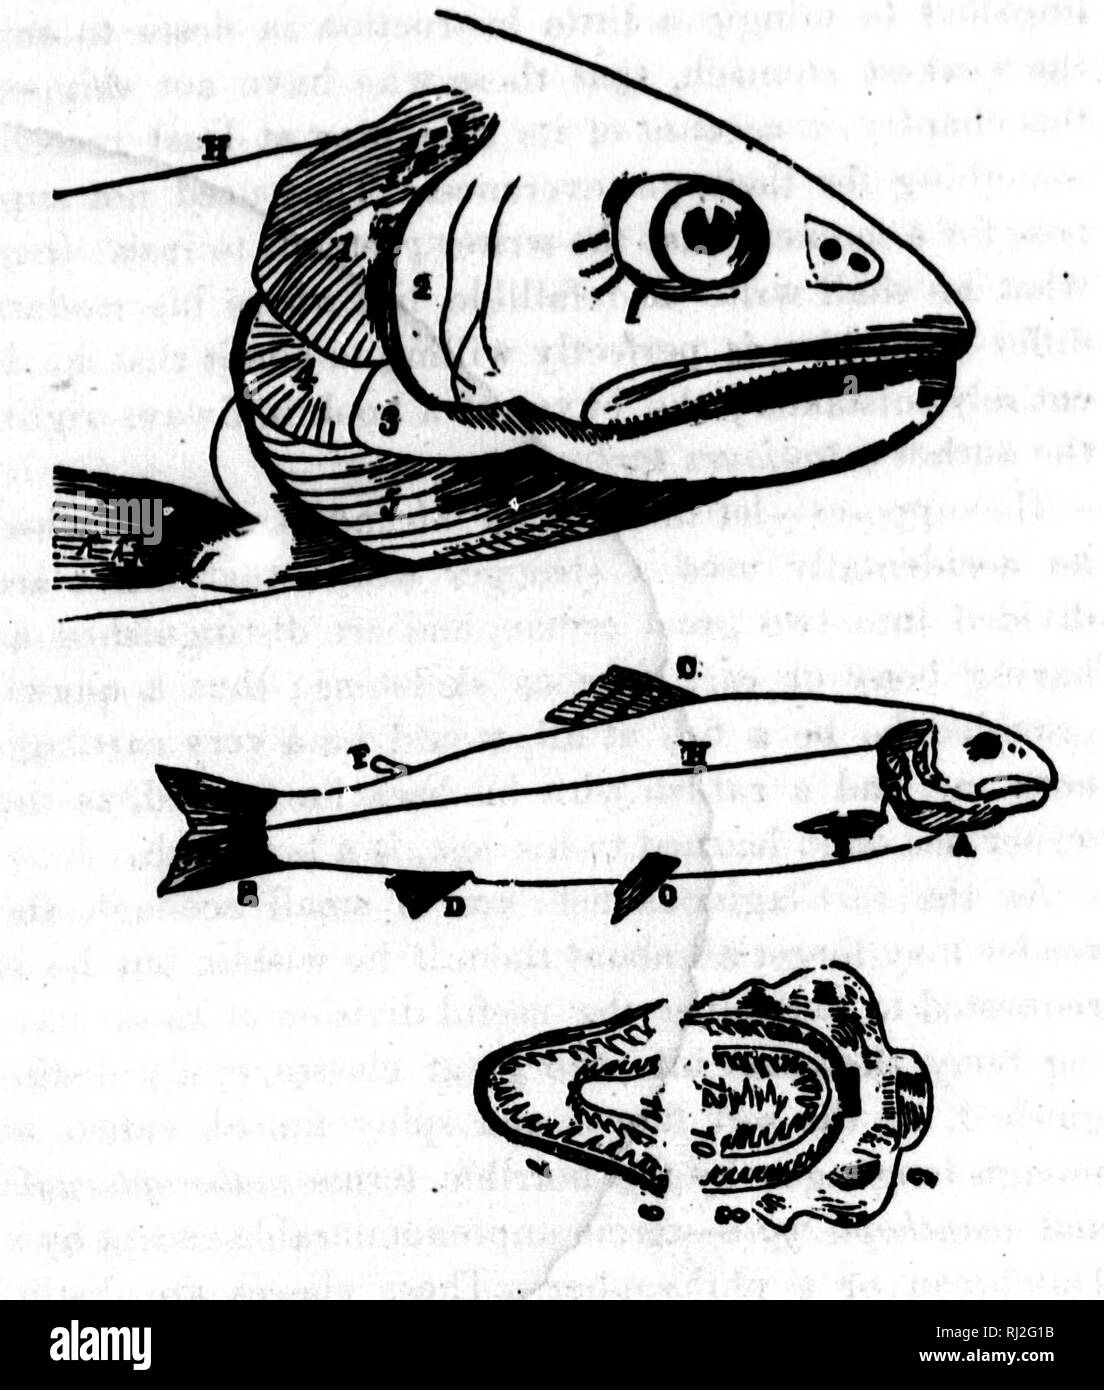 the game fish of the northern states and british provinces [microform] :  with an account of the salmon and sea-trout fishing of canada and new  brunswick,